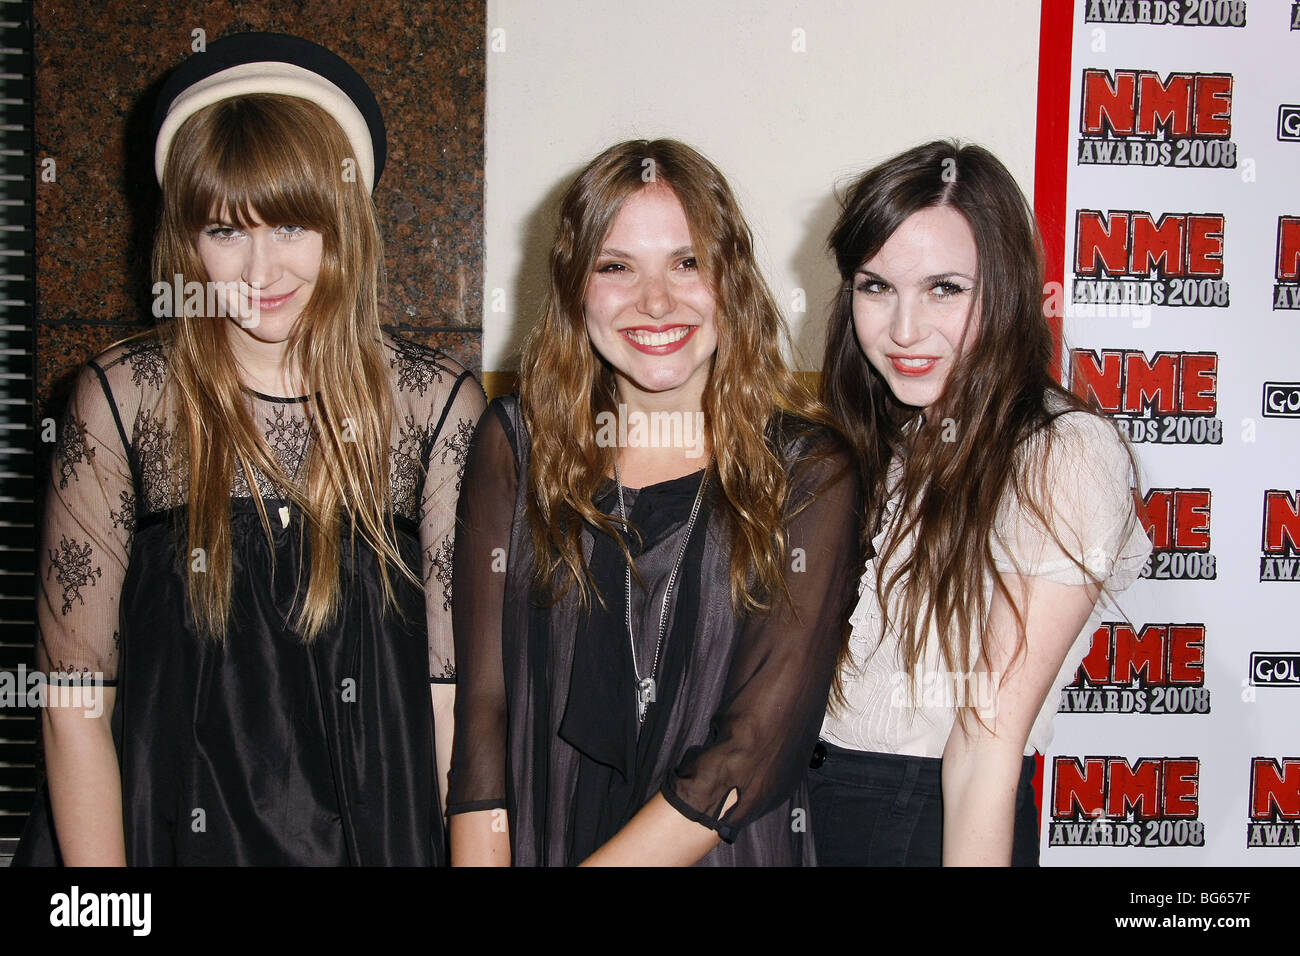 THE LIKE US NME AWARDS EL REY LOS ANGELES CALIFORNIA USA 23 April 2008 Stock Photo